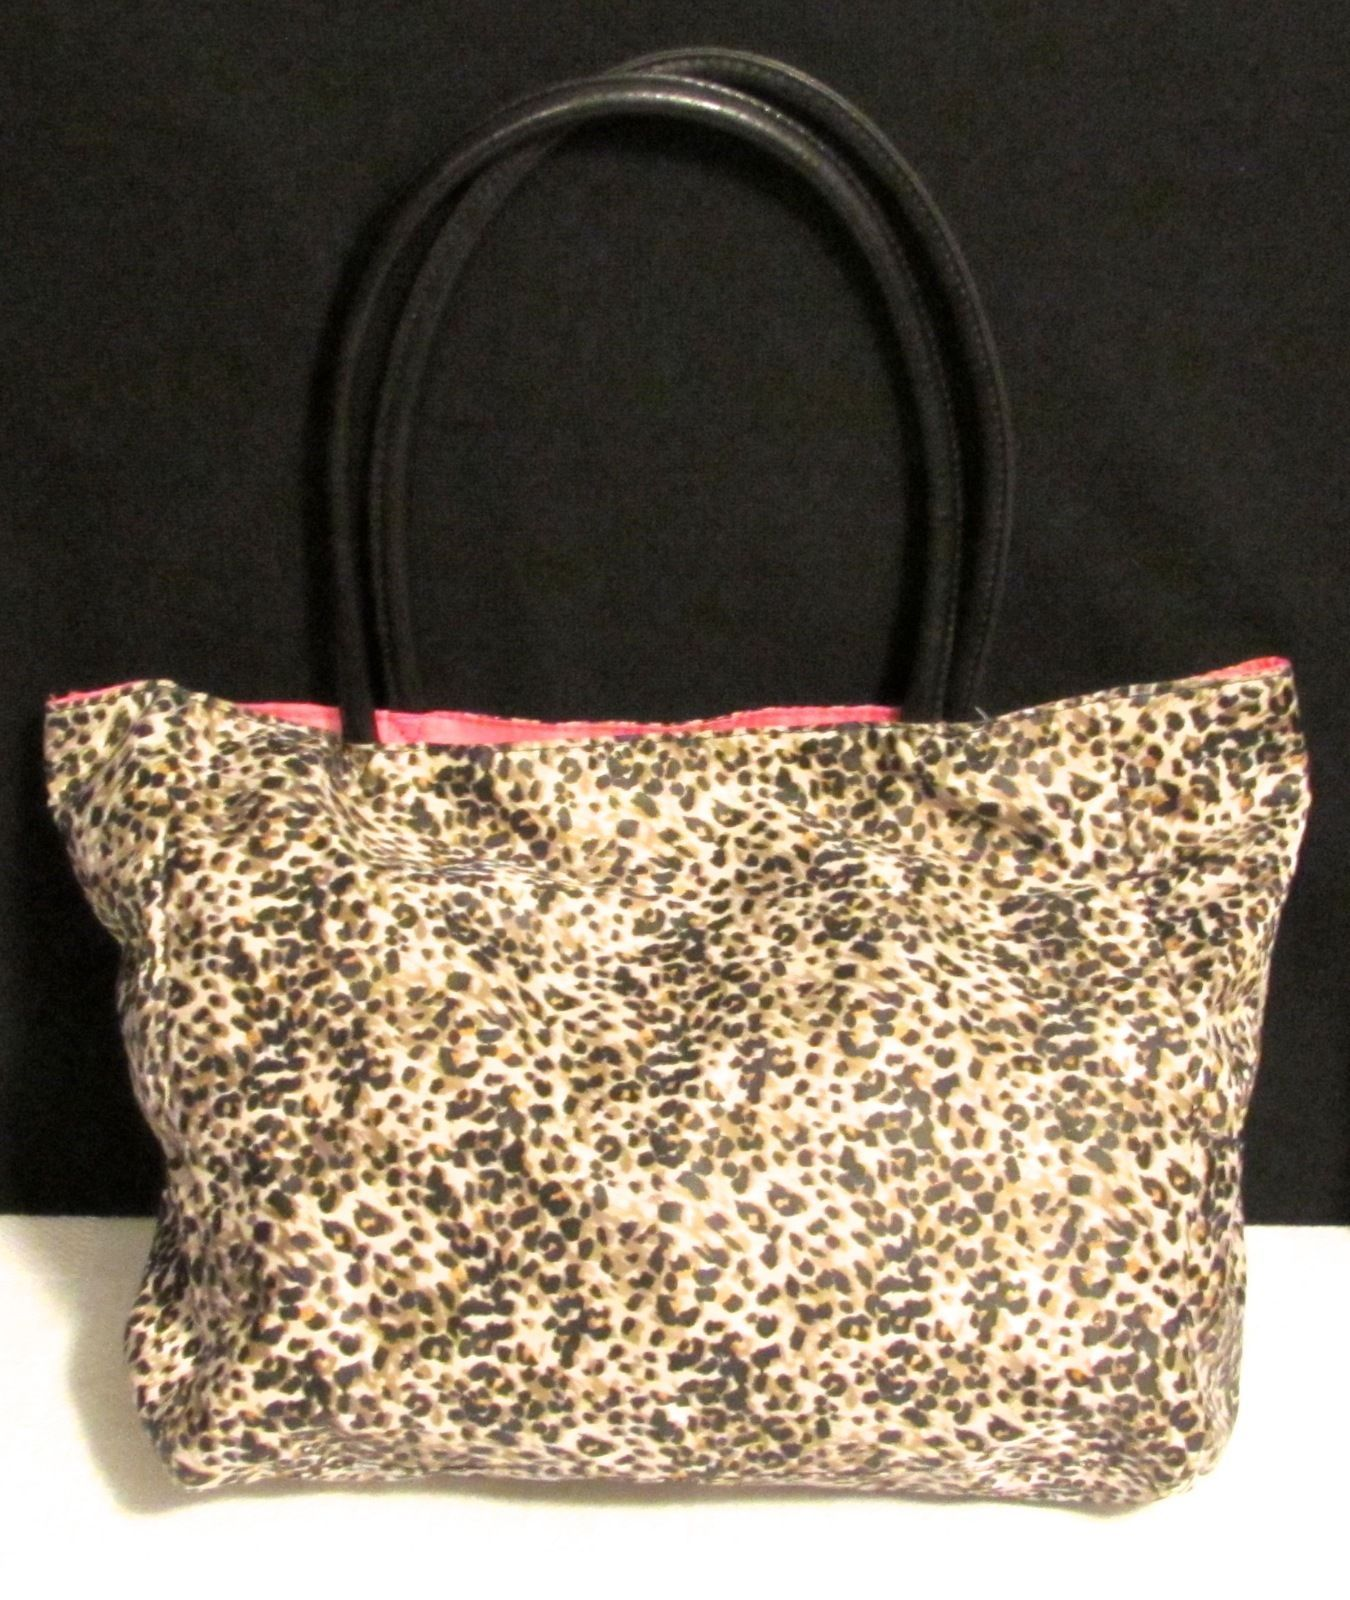 Wacoal Large Lightweight Leopard Print Shopper/Tote Pink Lining Multi-Color PVC